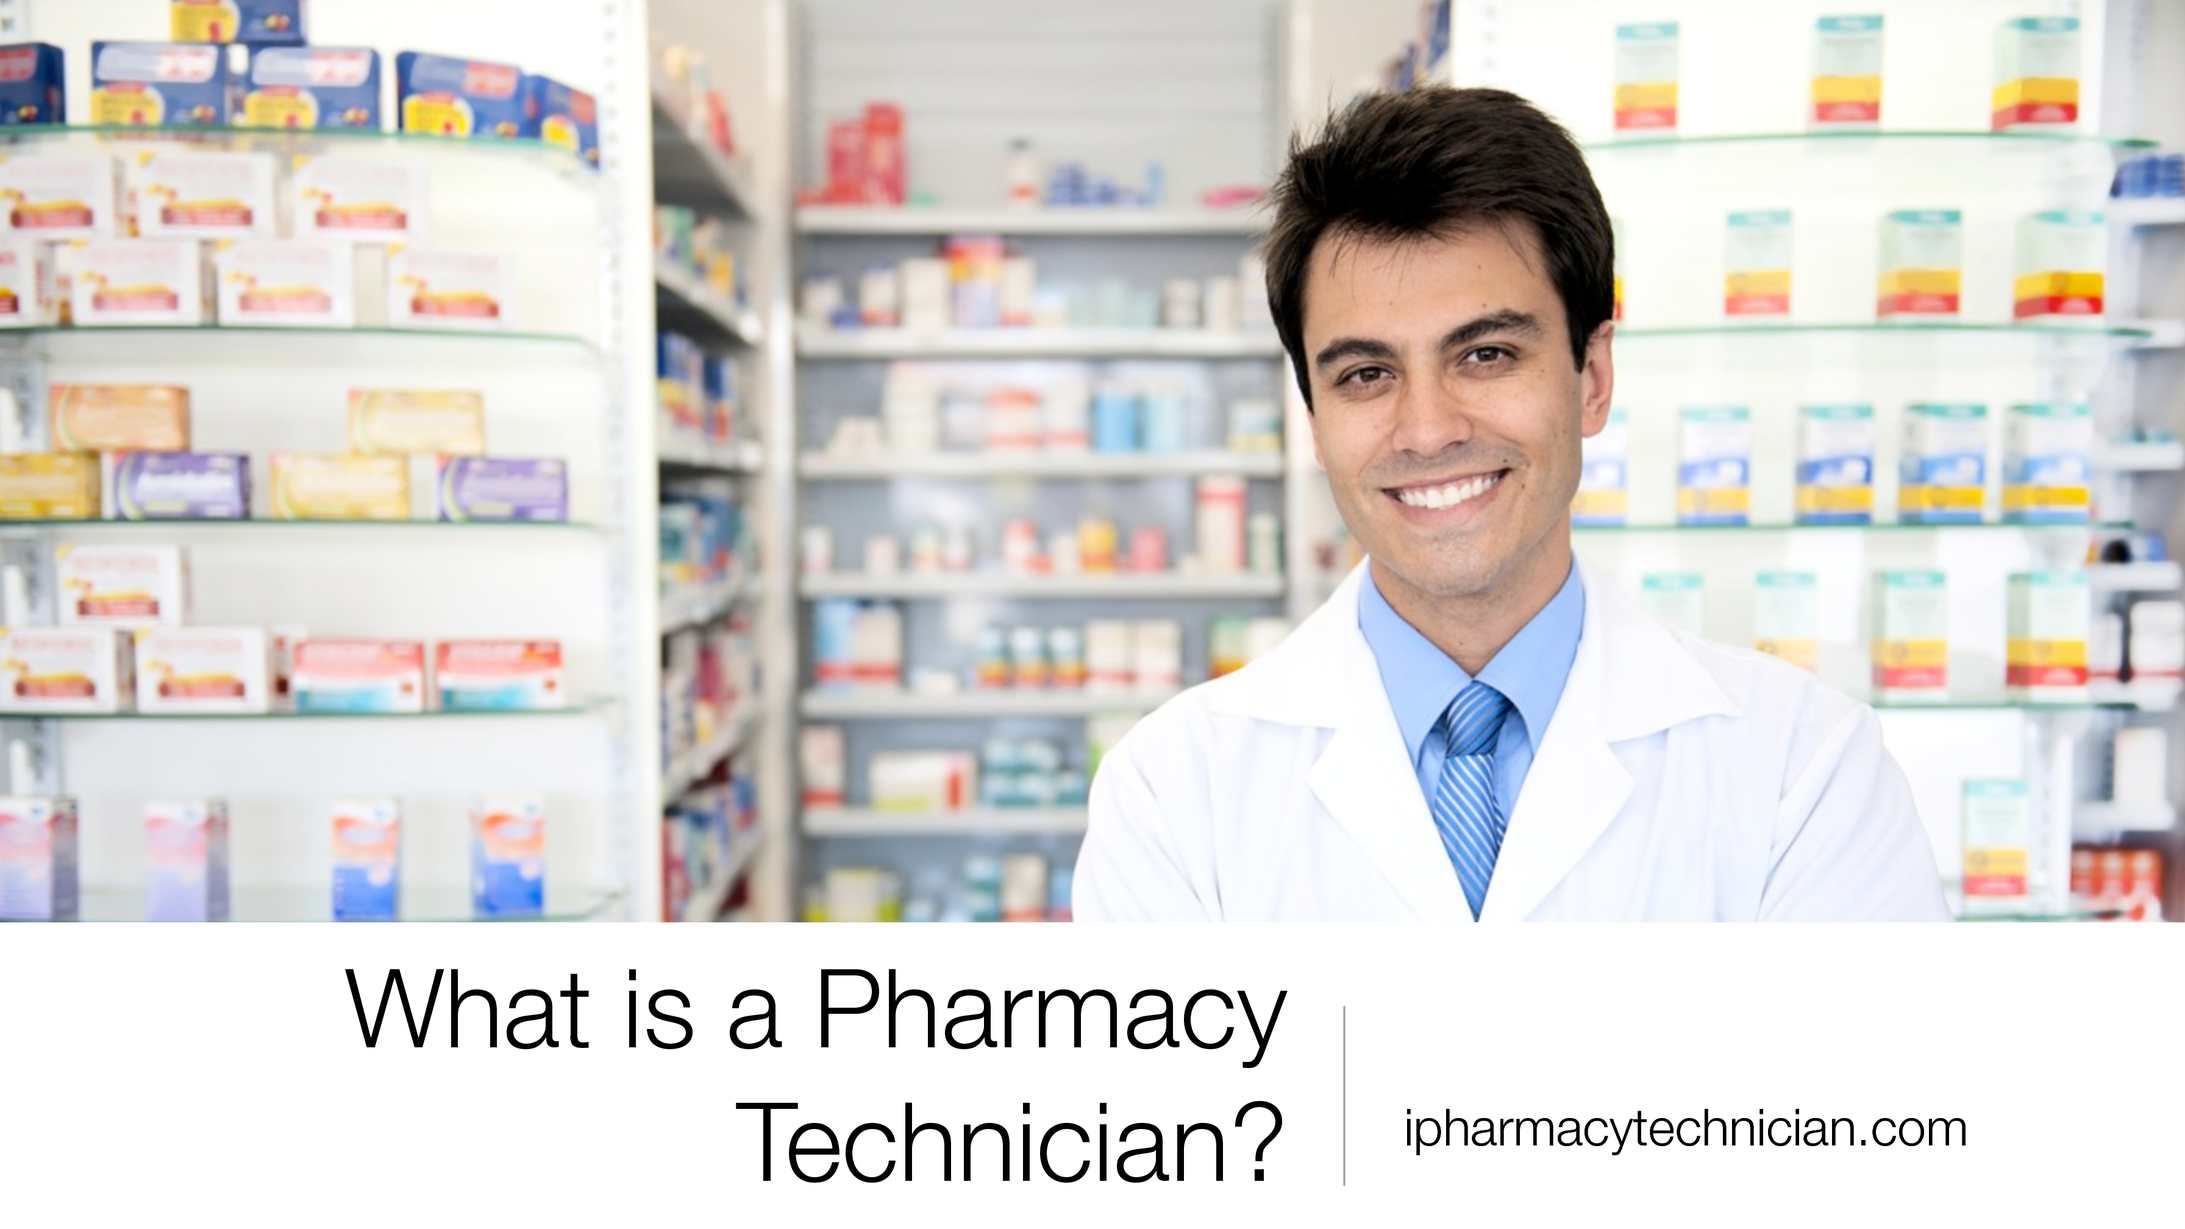 What is a pharmacy